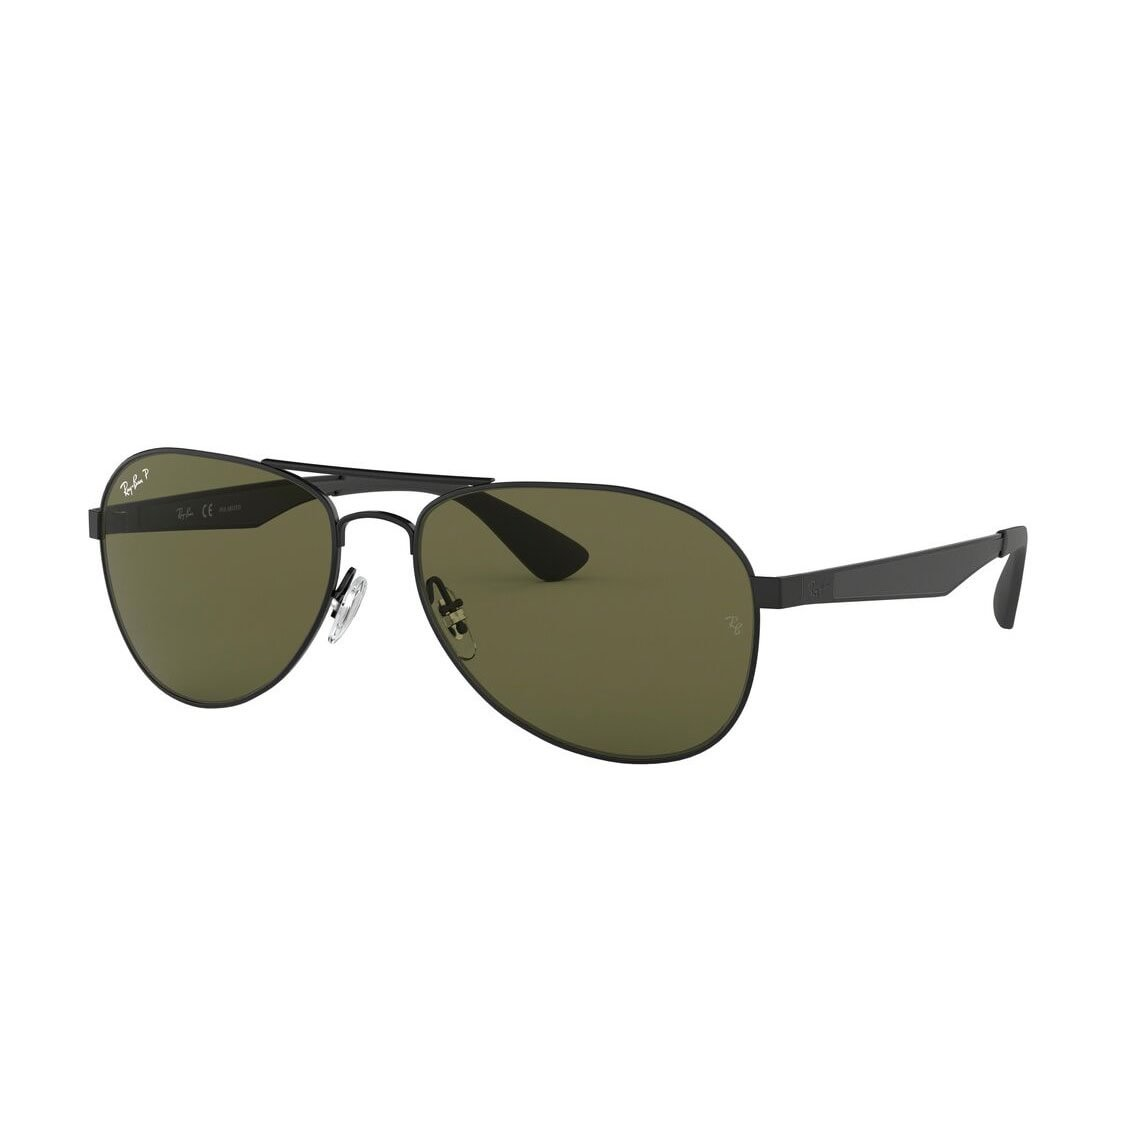 Ray-Ban RB3549 006/9A 58